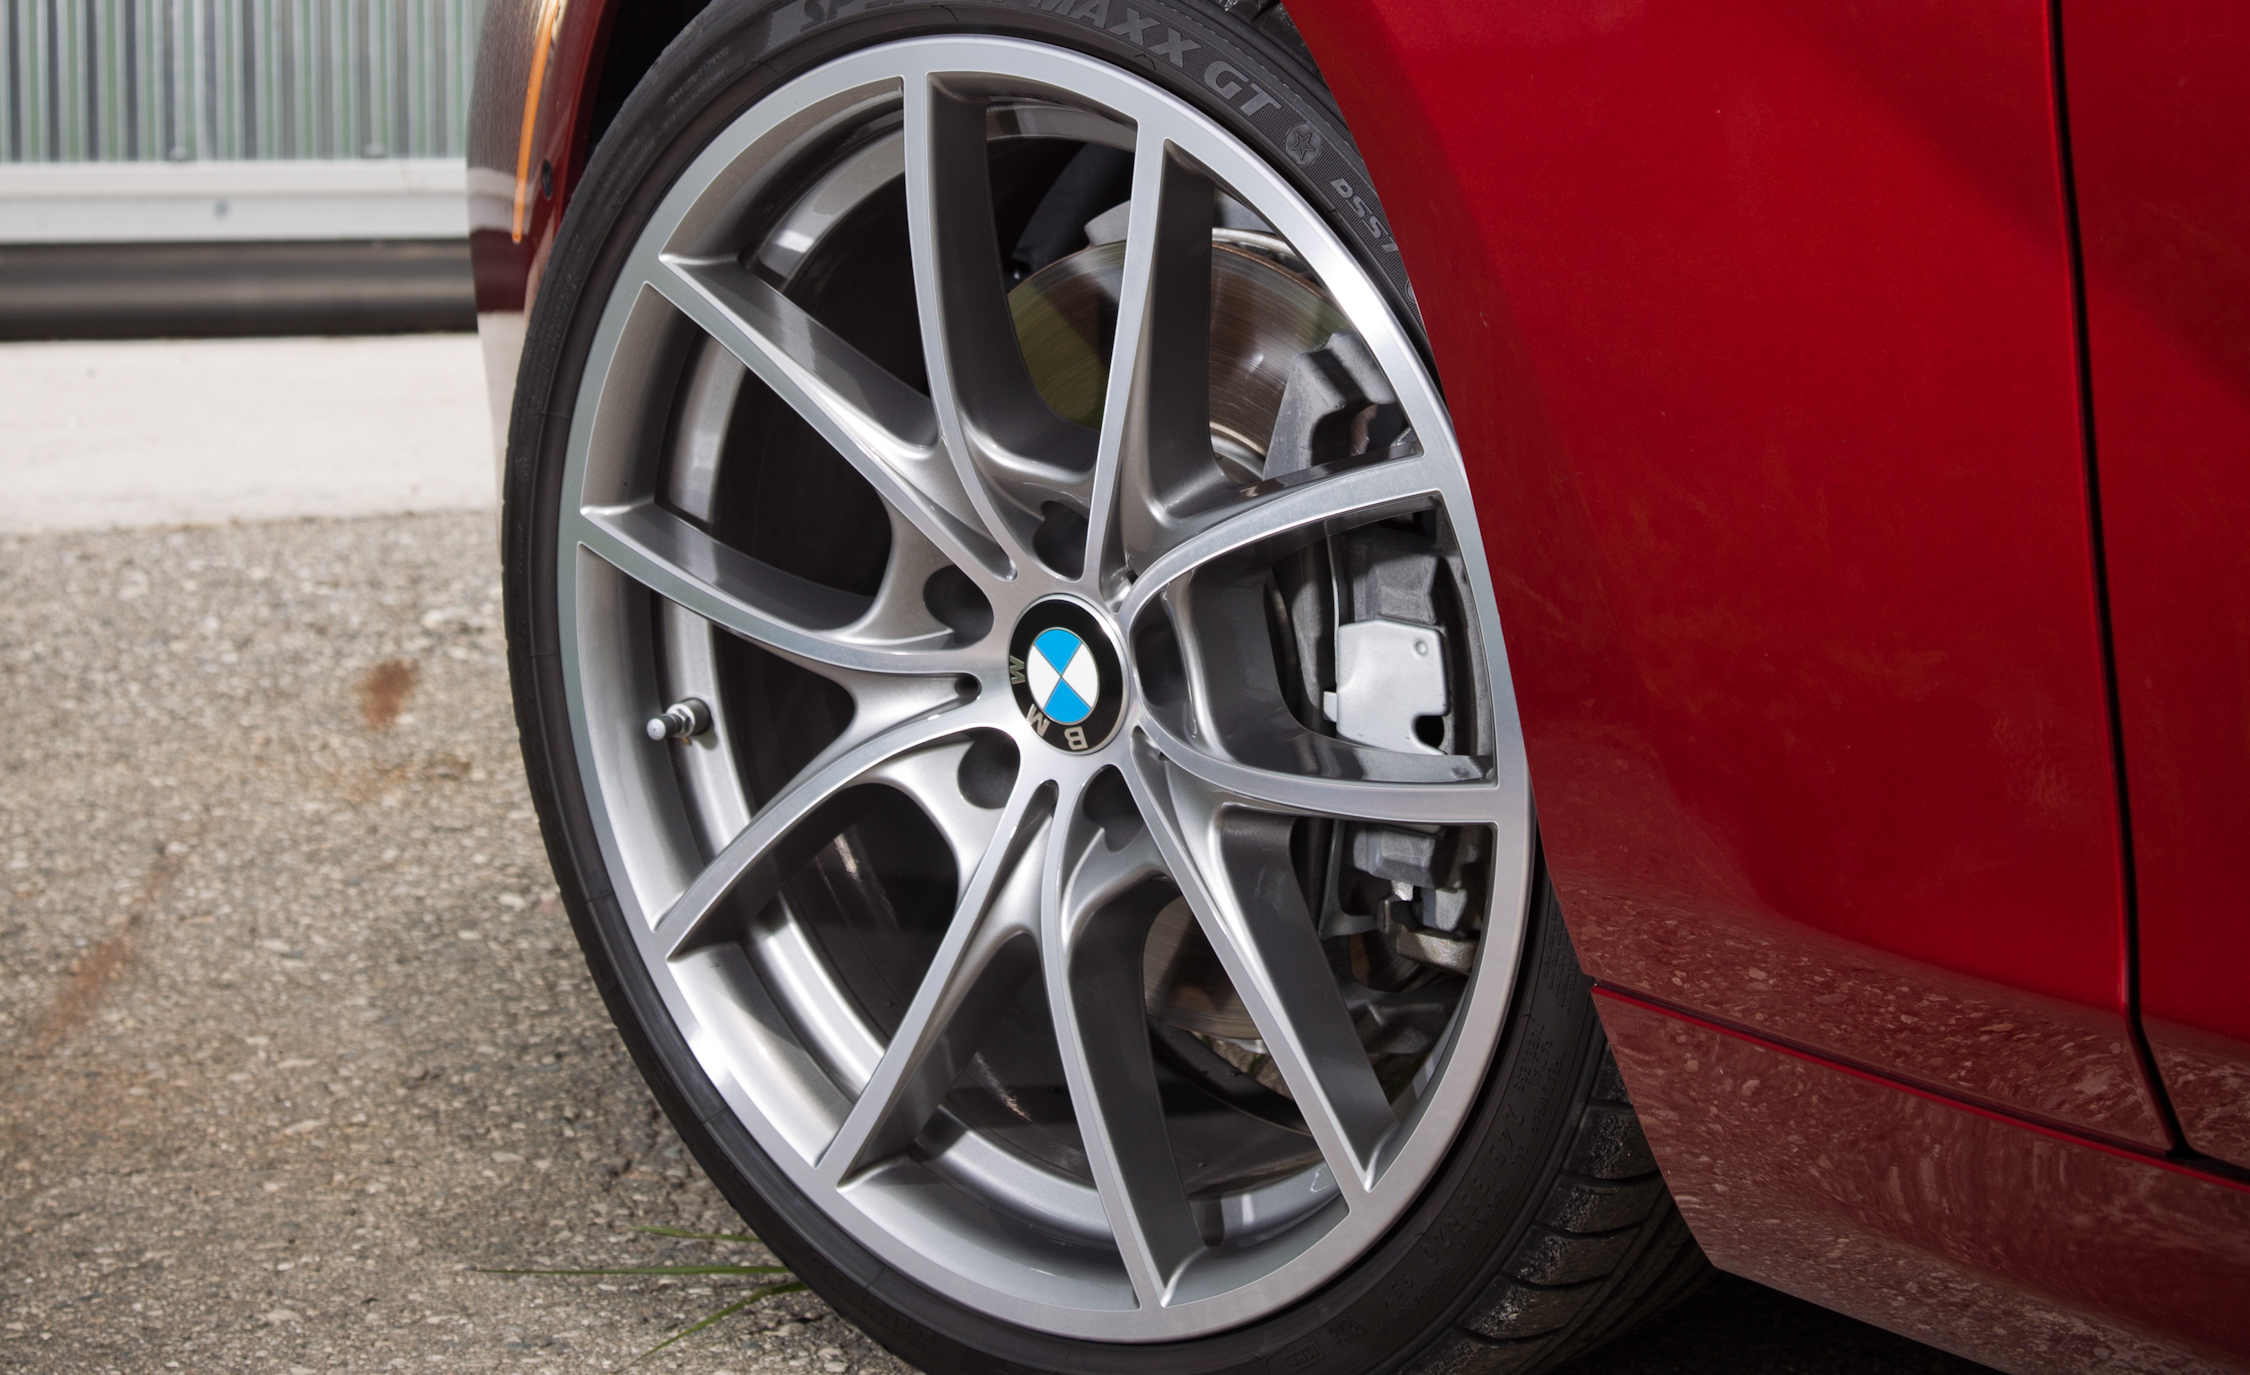 2012 BMW 650i Convertible Exterior View Wheel Velg (Photo 10 of 19)